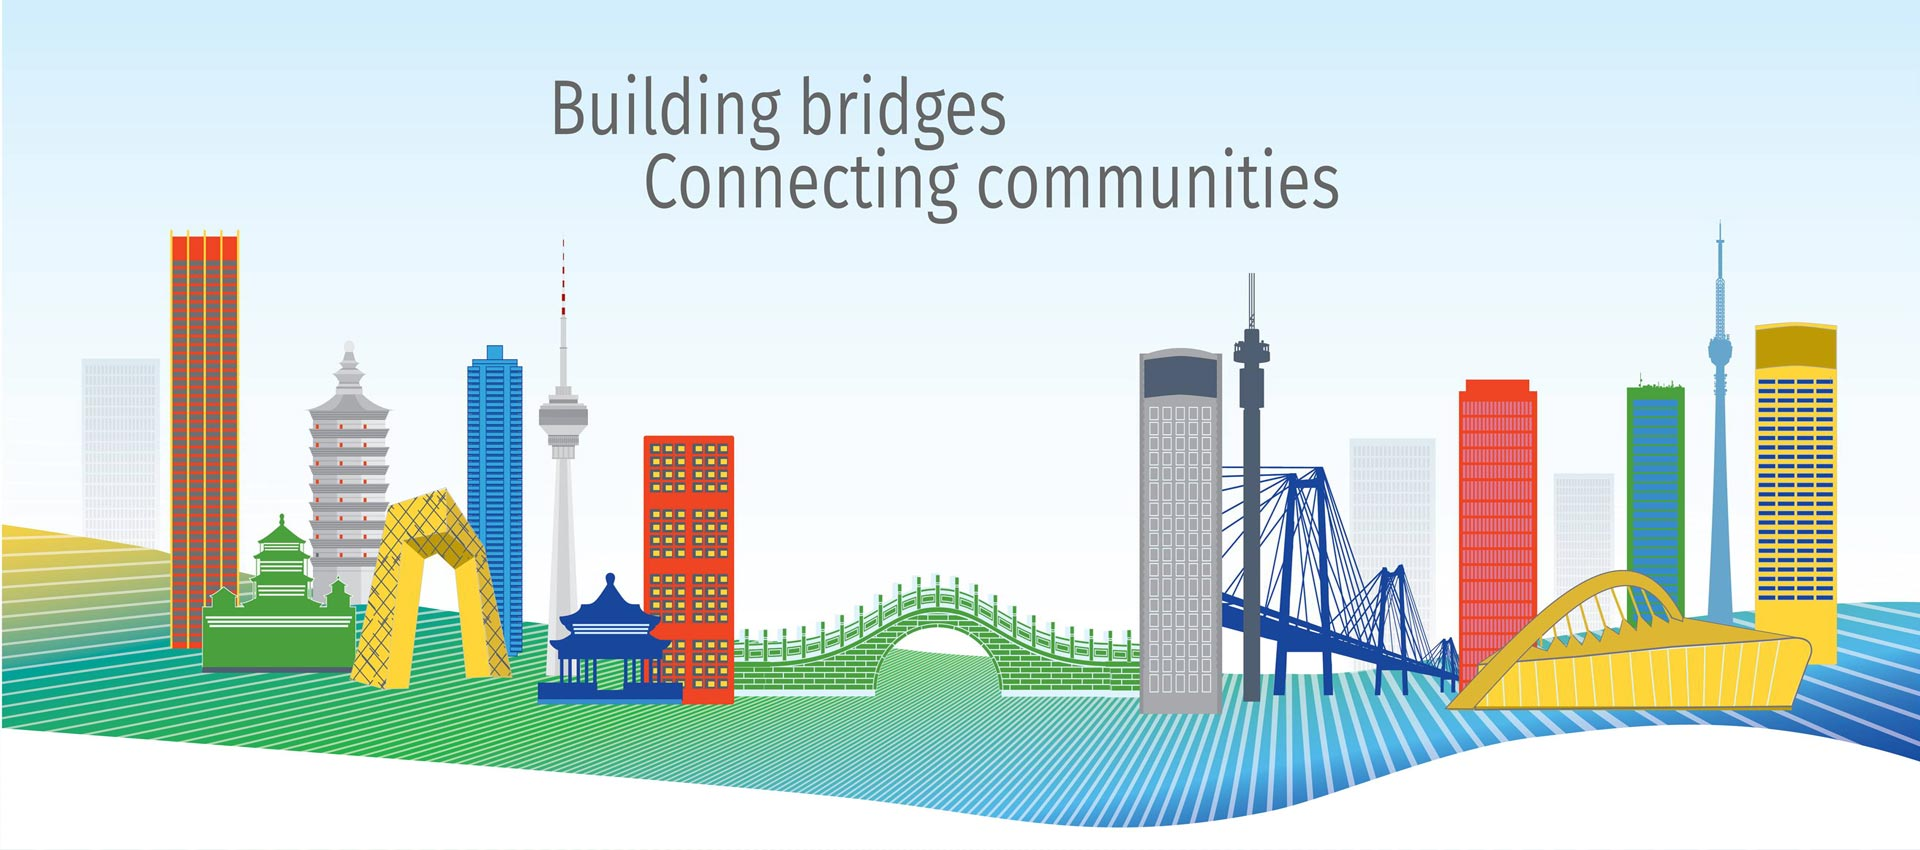 yoa cables building bridges connecting communities